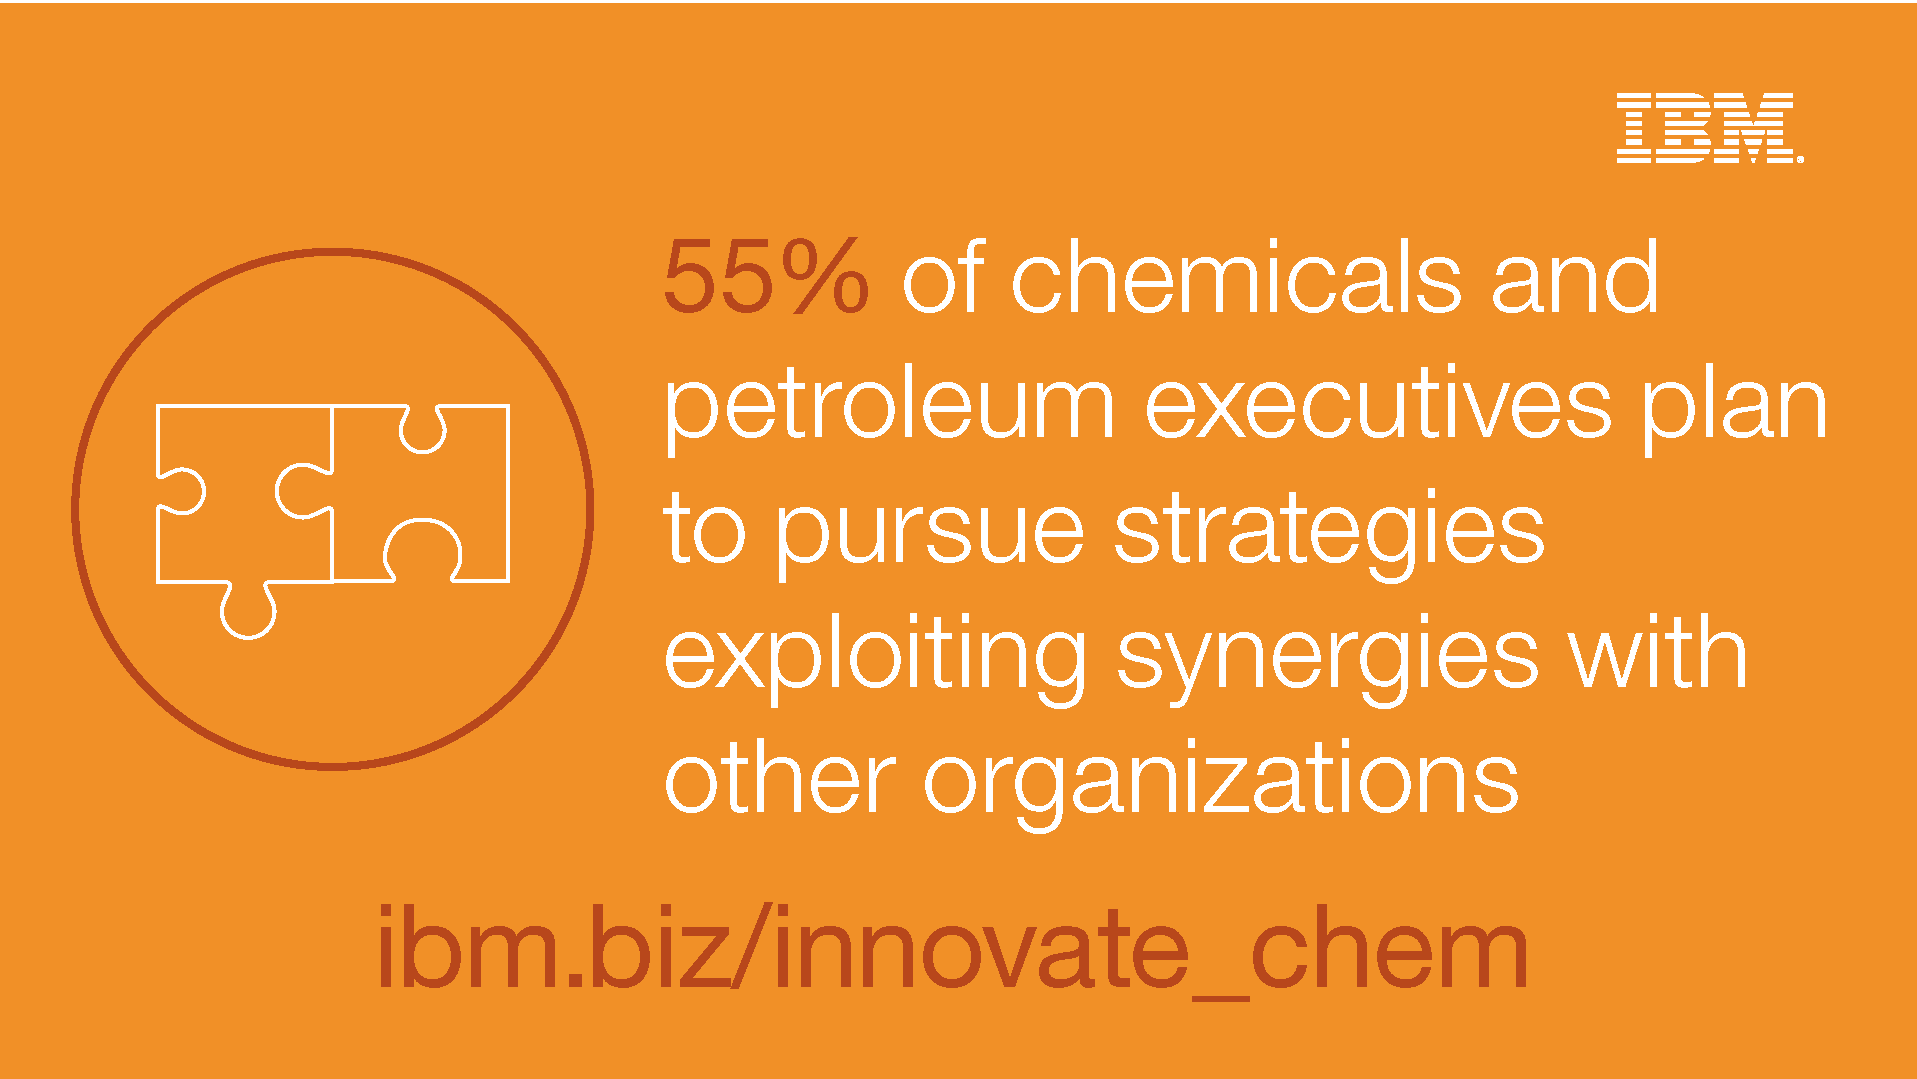 55% of chemicals and petroleum executives plan to pursue strategies exploiting synergies with other organizations